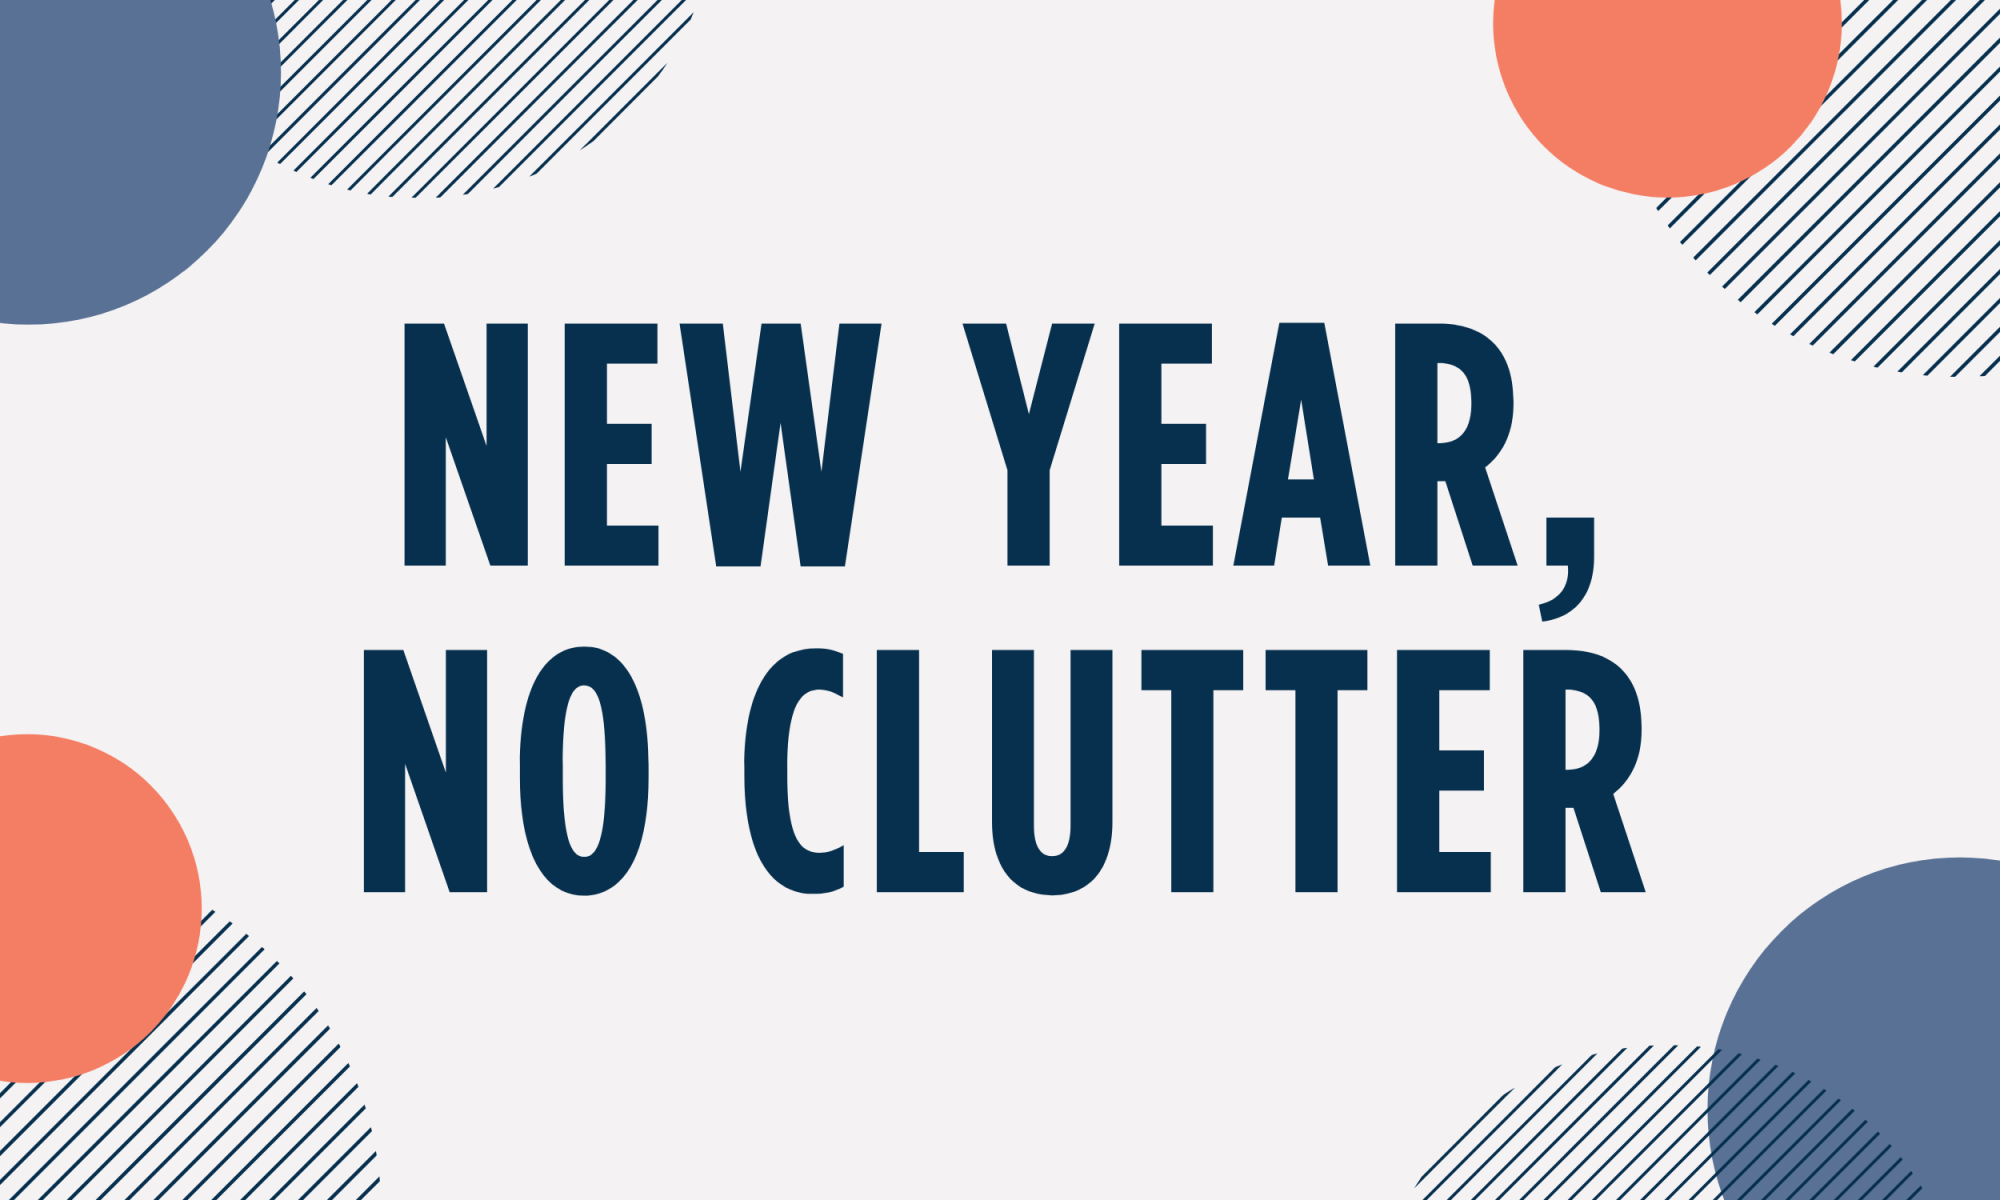 New Year No Clutter